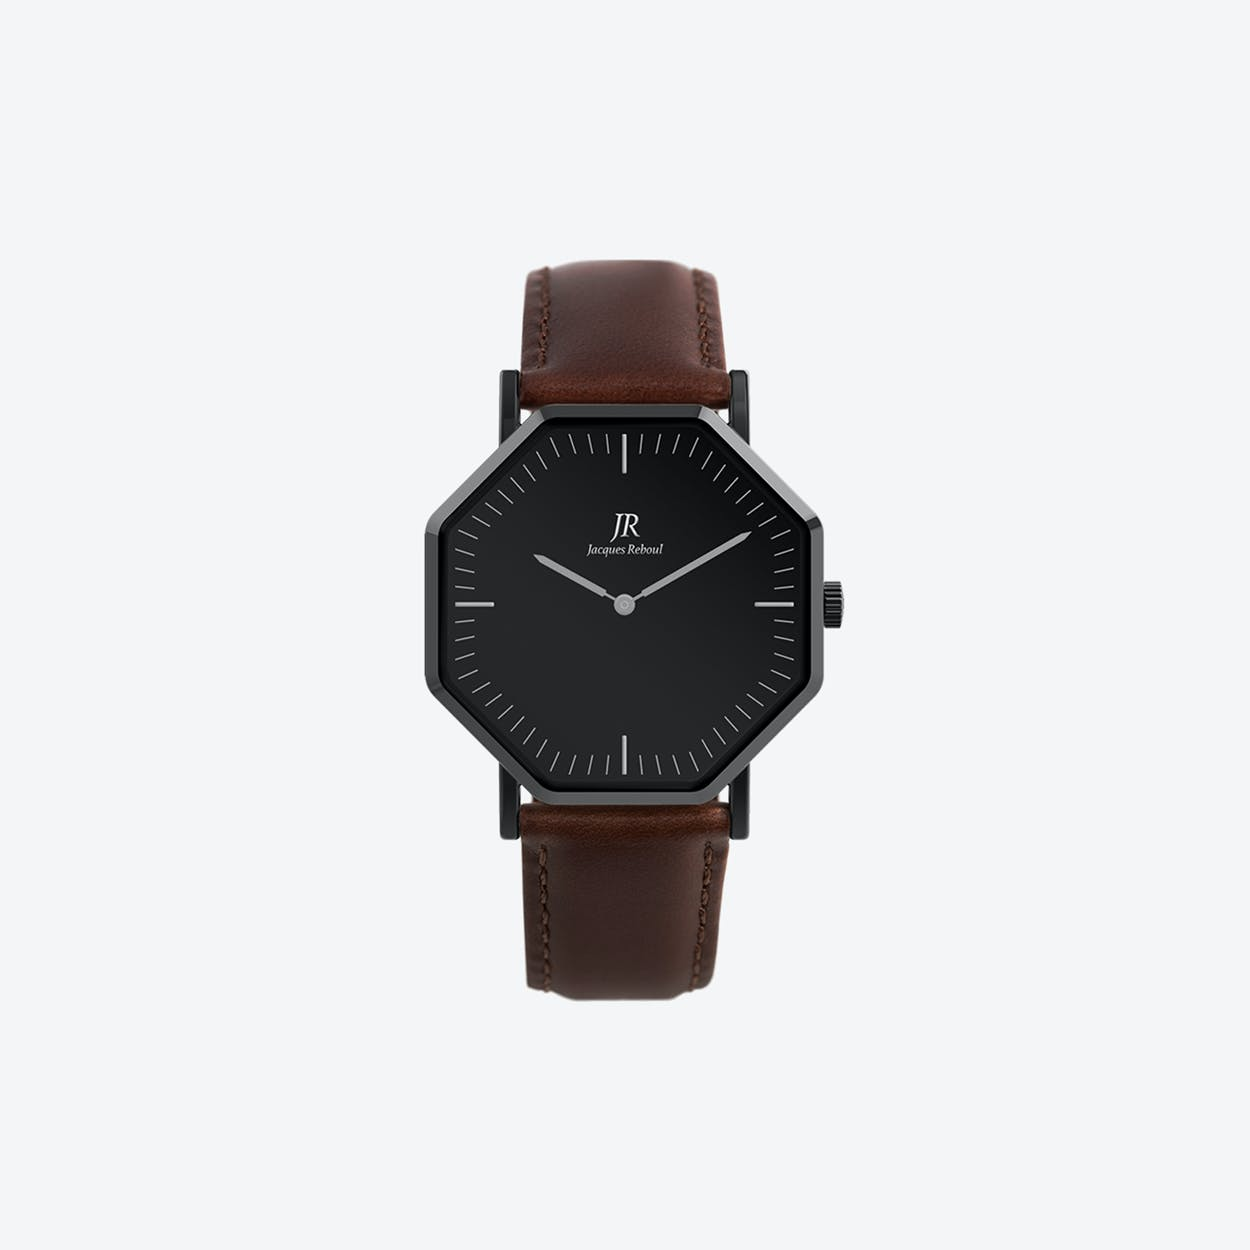 Black Hexagonal Watch with Brown Leather Strap, 41mm